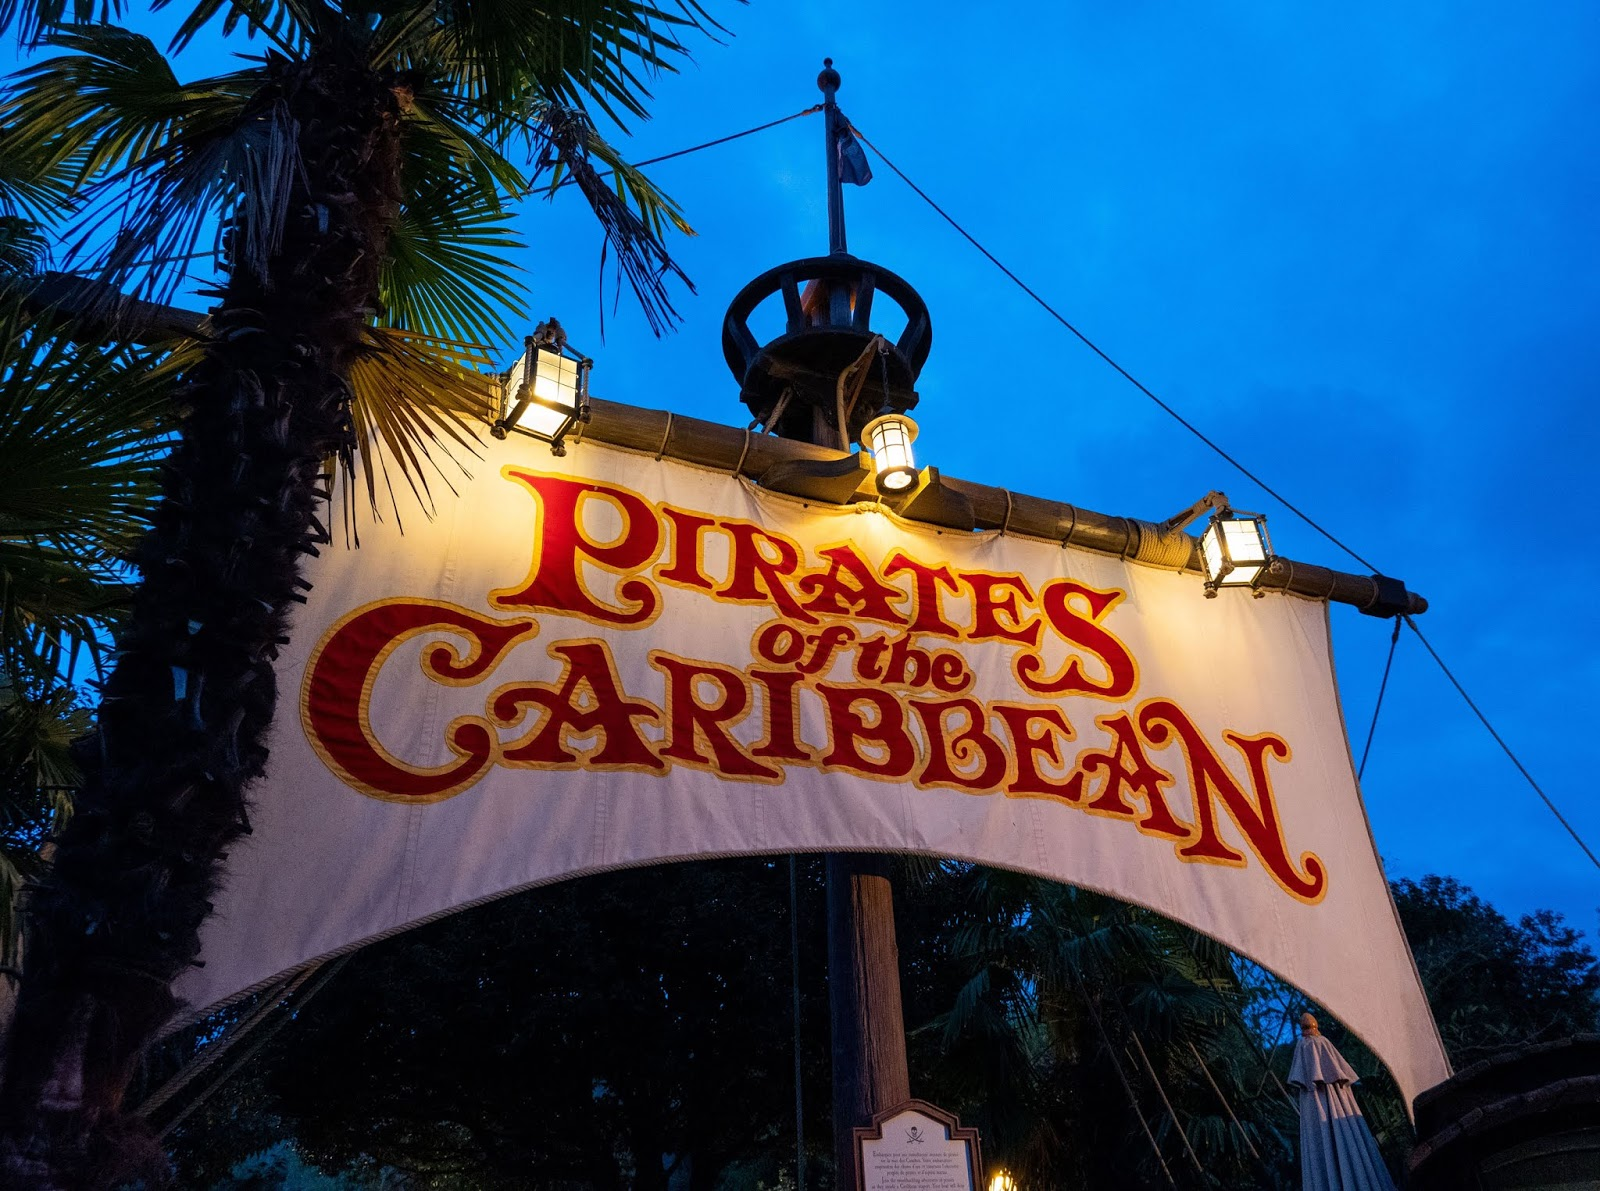 Pirates of the Caribbean at Disneyland Paris